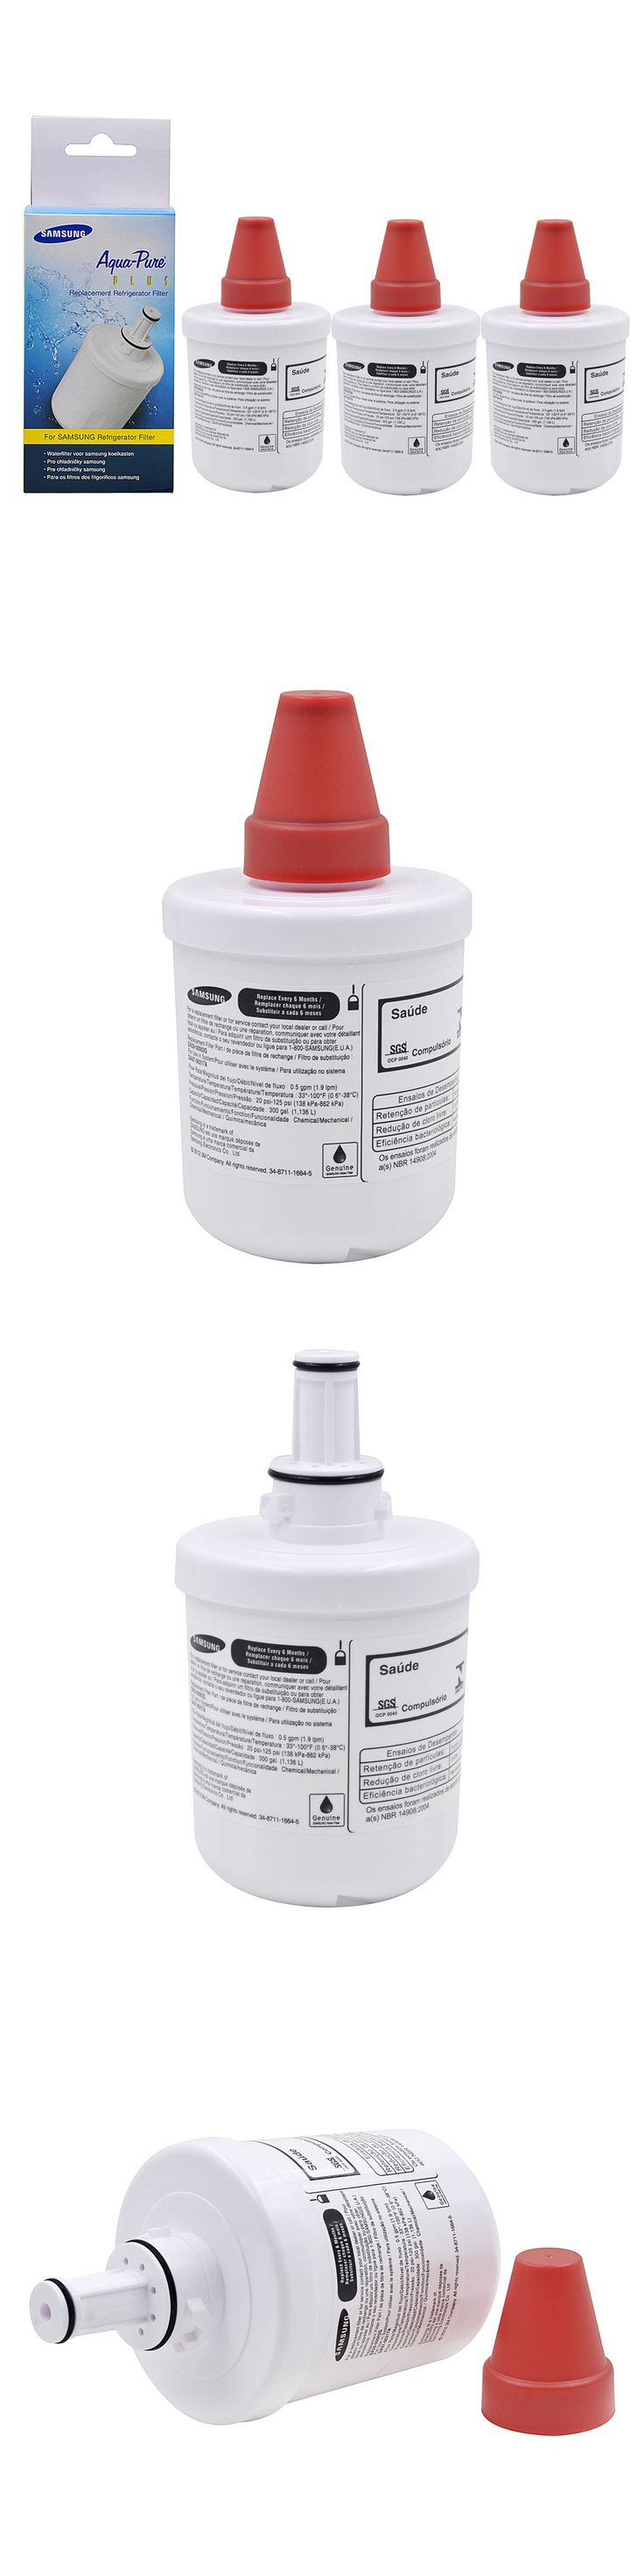 Water Filters 20684: 3 Pack Genuine Samsung Da29-00003G Aqua-Pure Plus Refrigerator Water Filter -> BUY IT NOW ONLY: $41.89 on eBay!